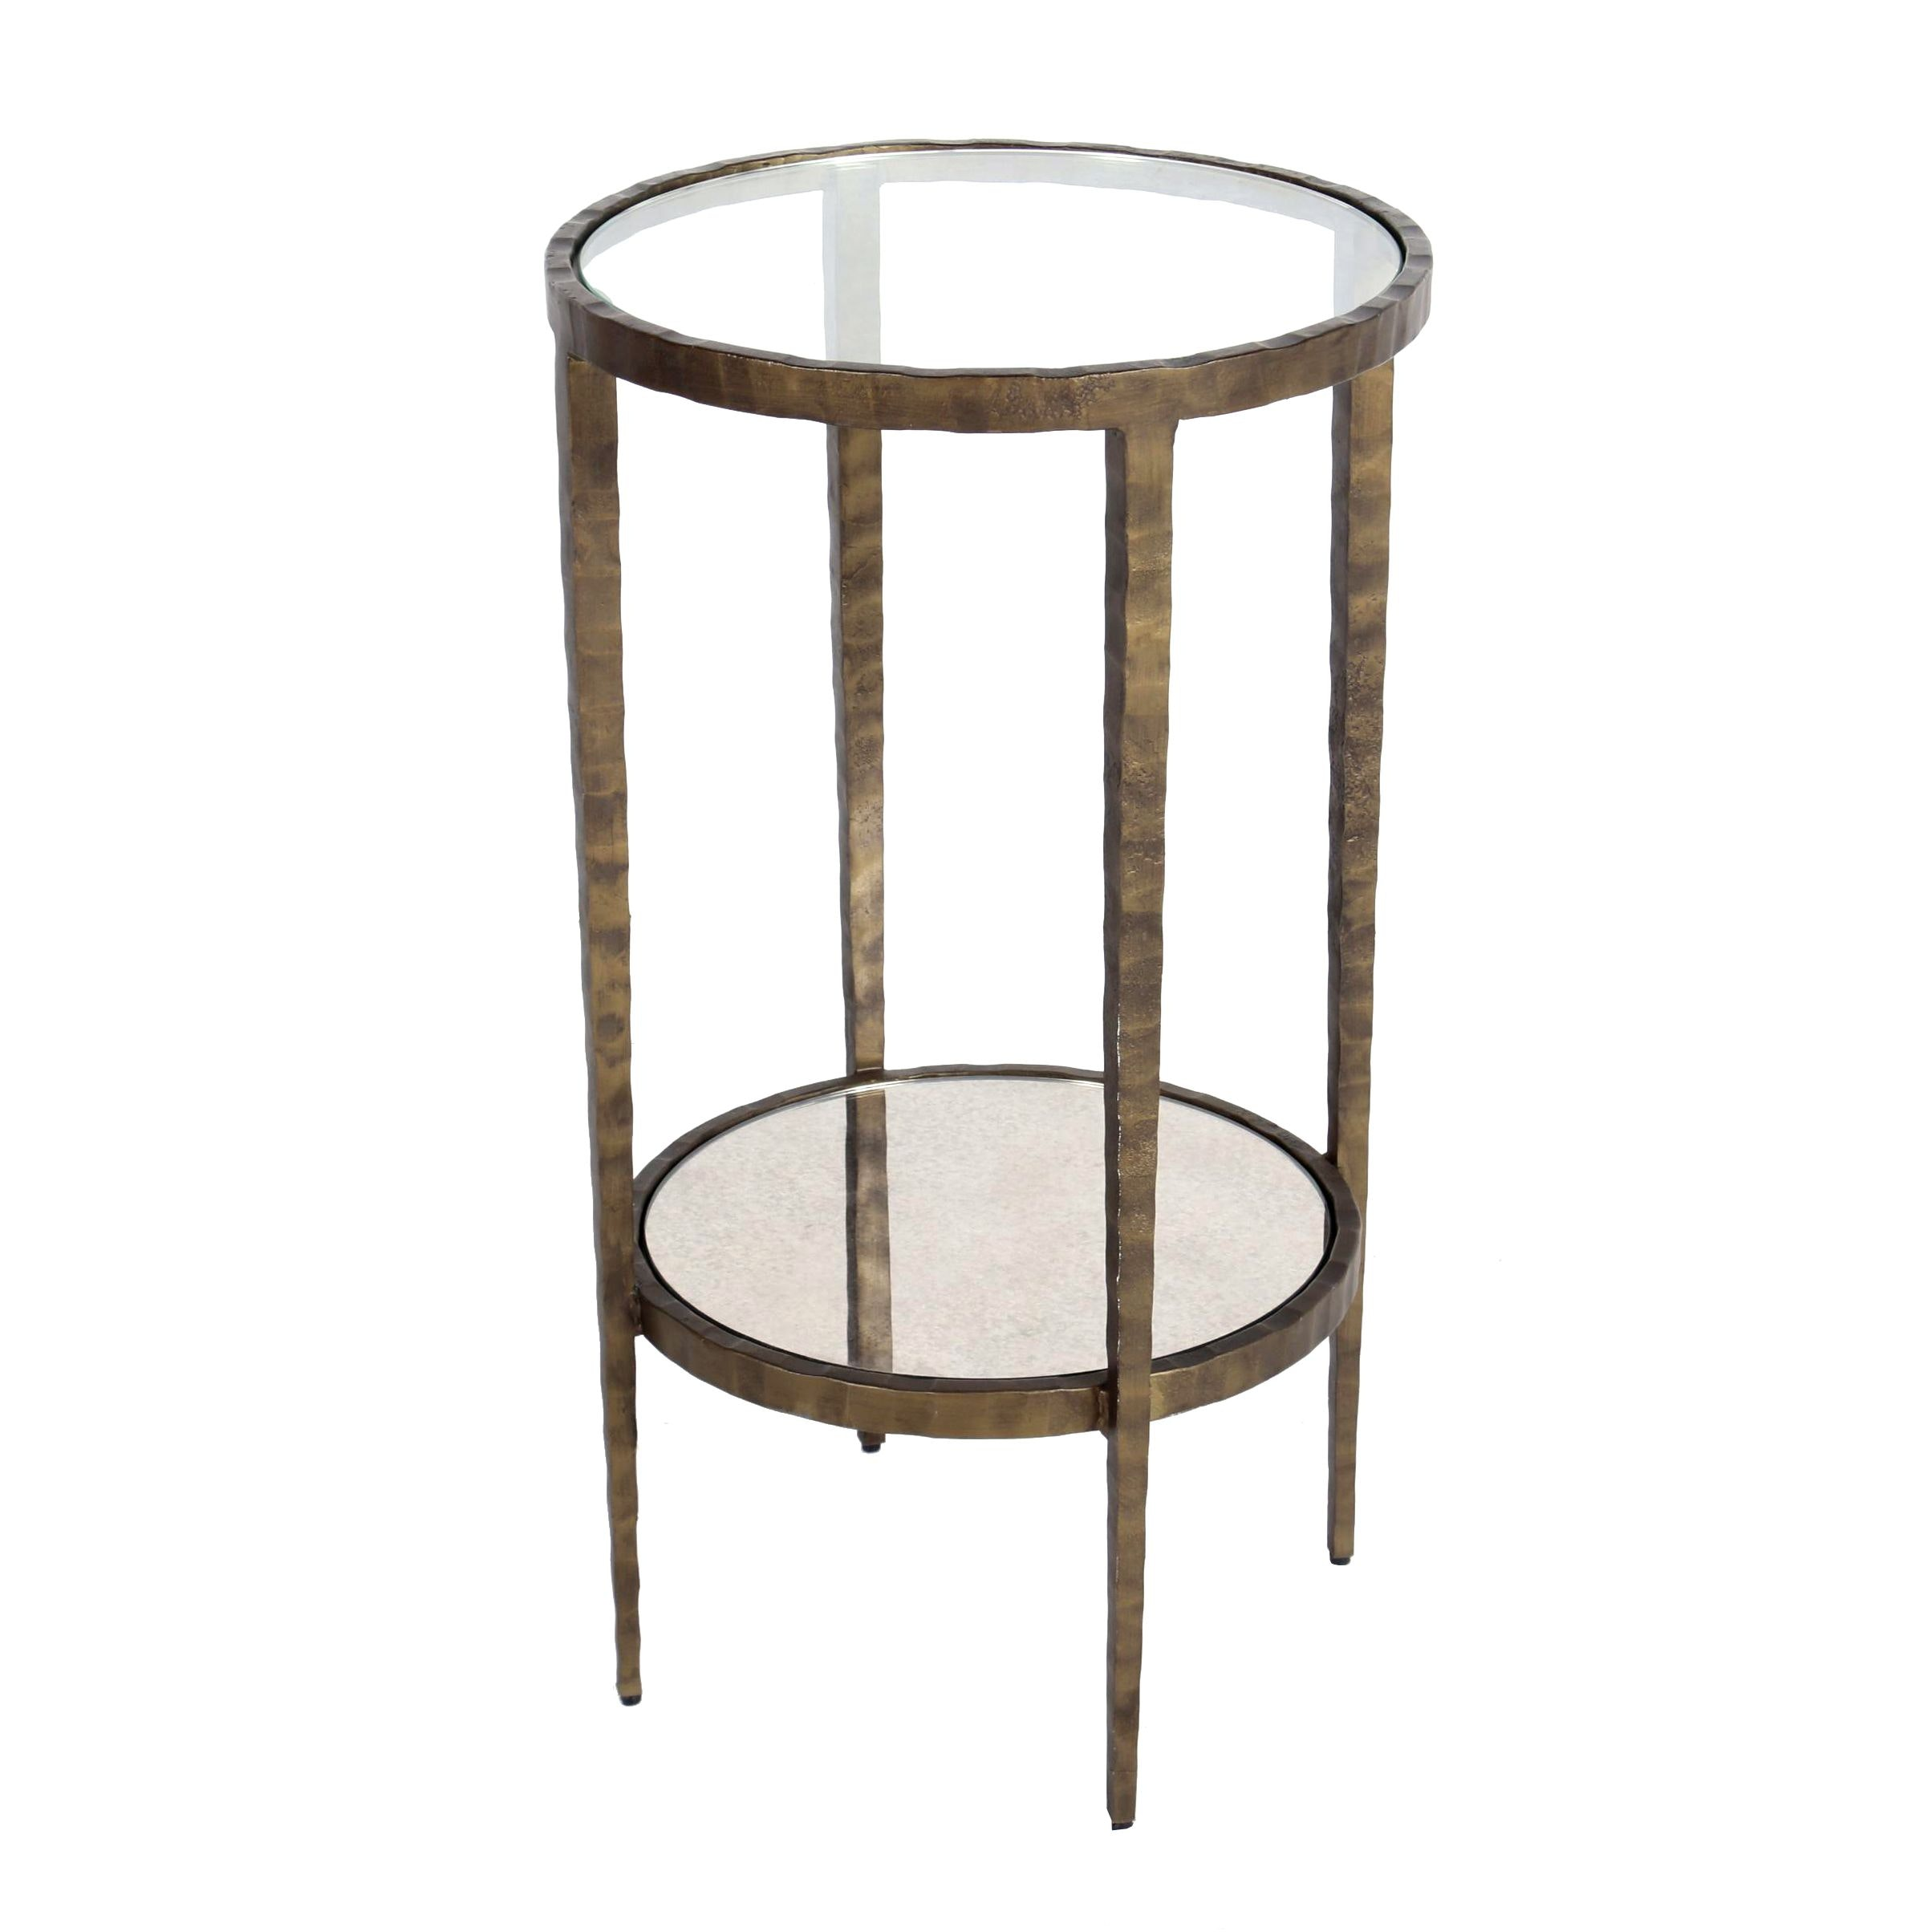 Art Deco Style Forged-Steel Round Side Table, Probably Crate and Barrel